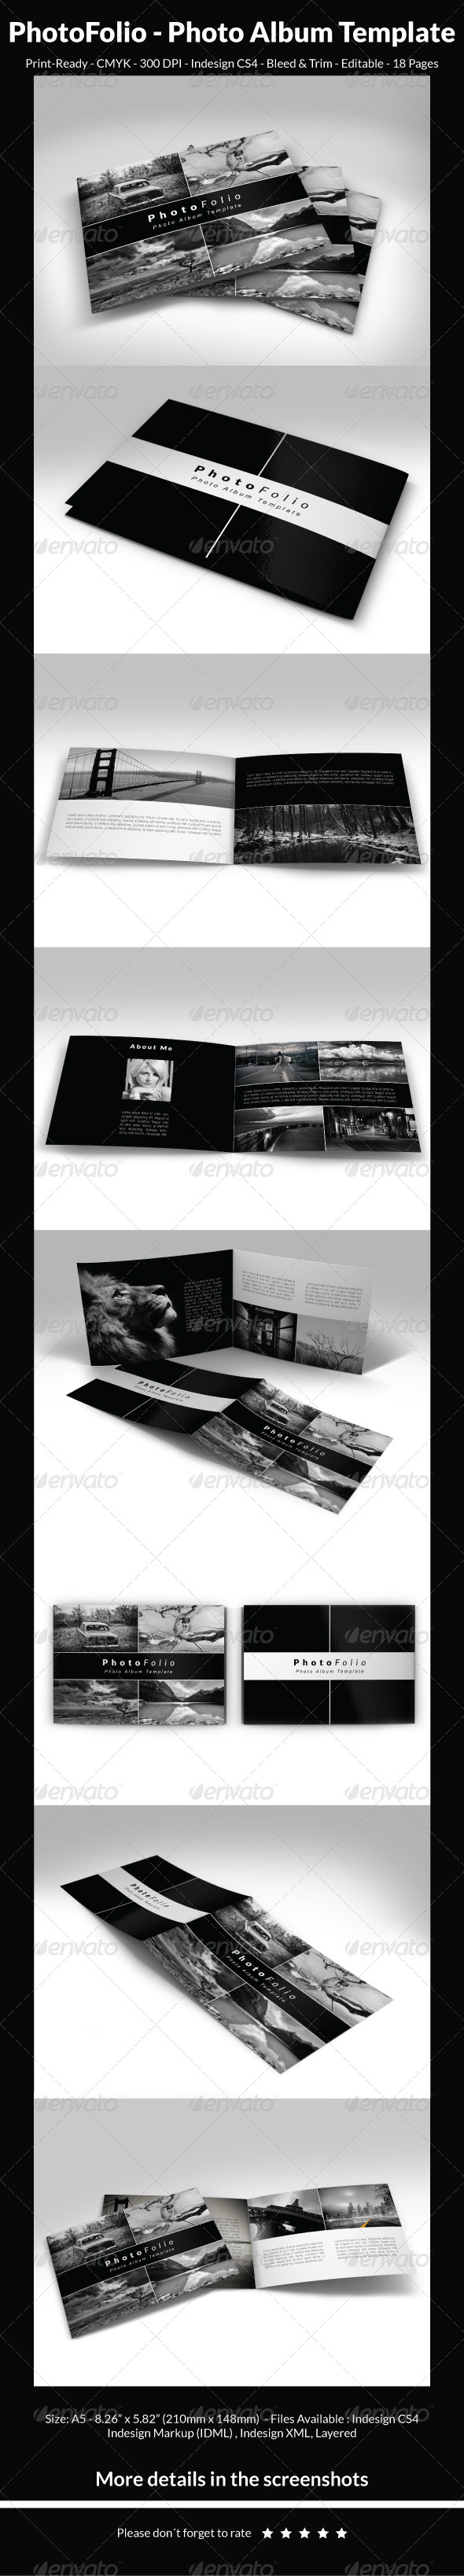 PhotoFolio - Photo Album Template - Photo Albums Print Templates